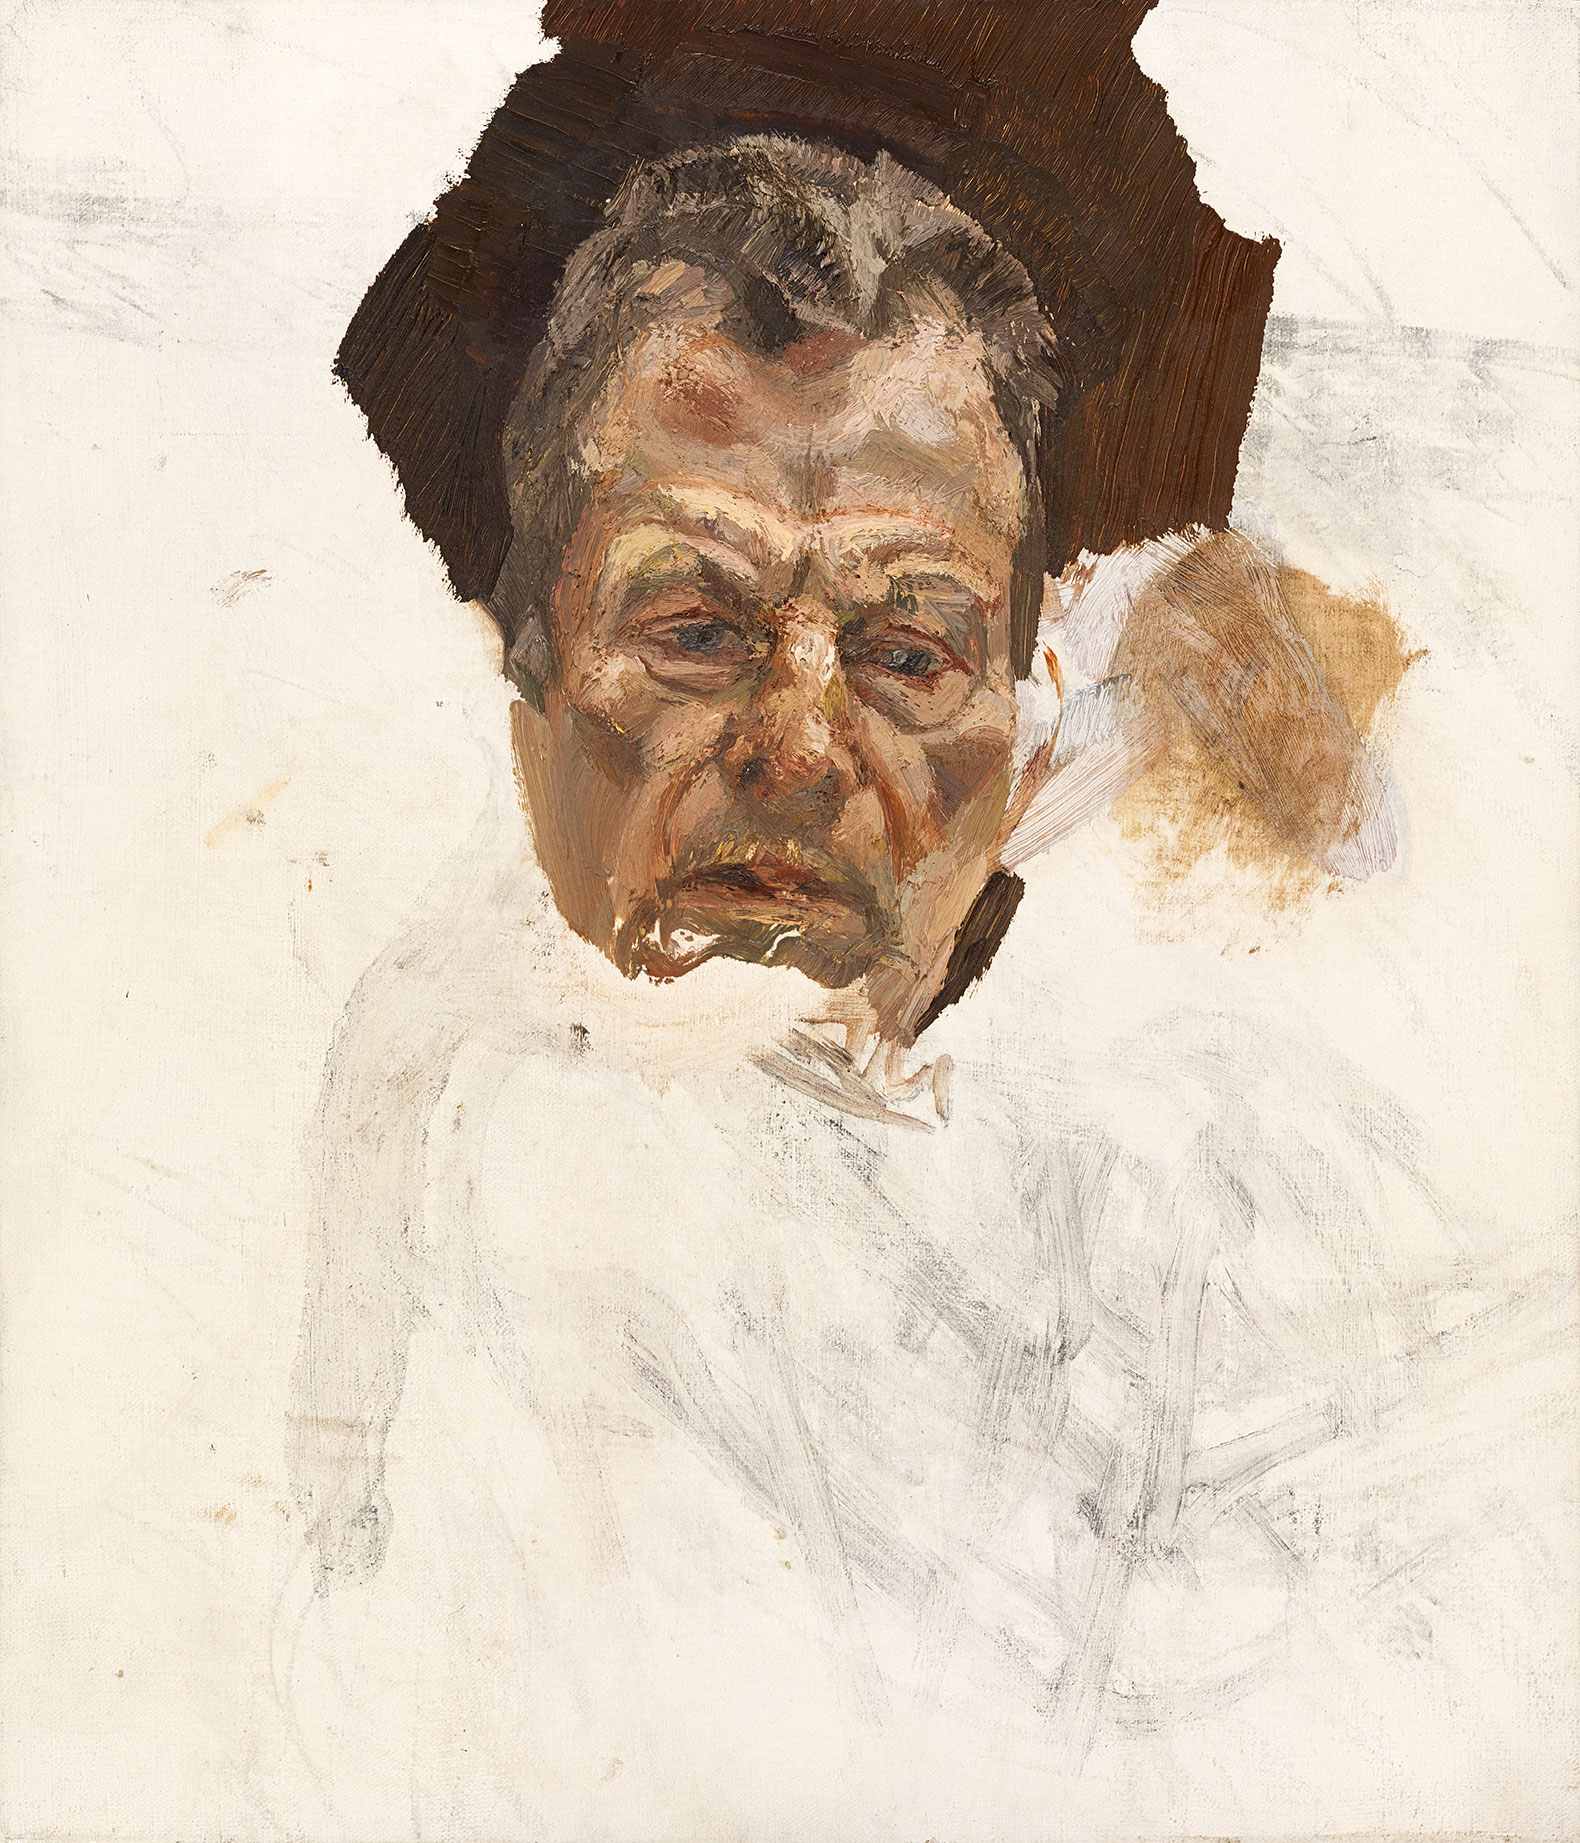 Lucian Freud, Unfinished self-portrait, c. 1980 (Estate of Lucian Freud/National Portrait Gallery, London/The Lucian Freud Archive)